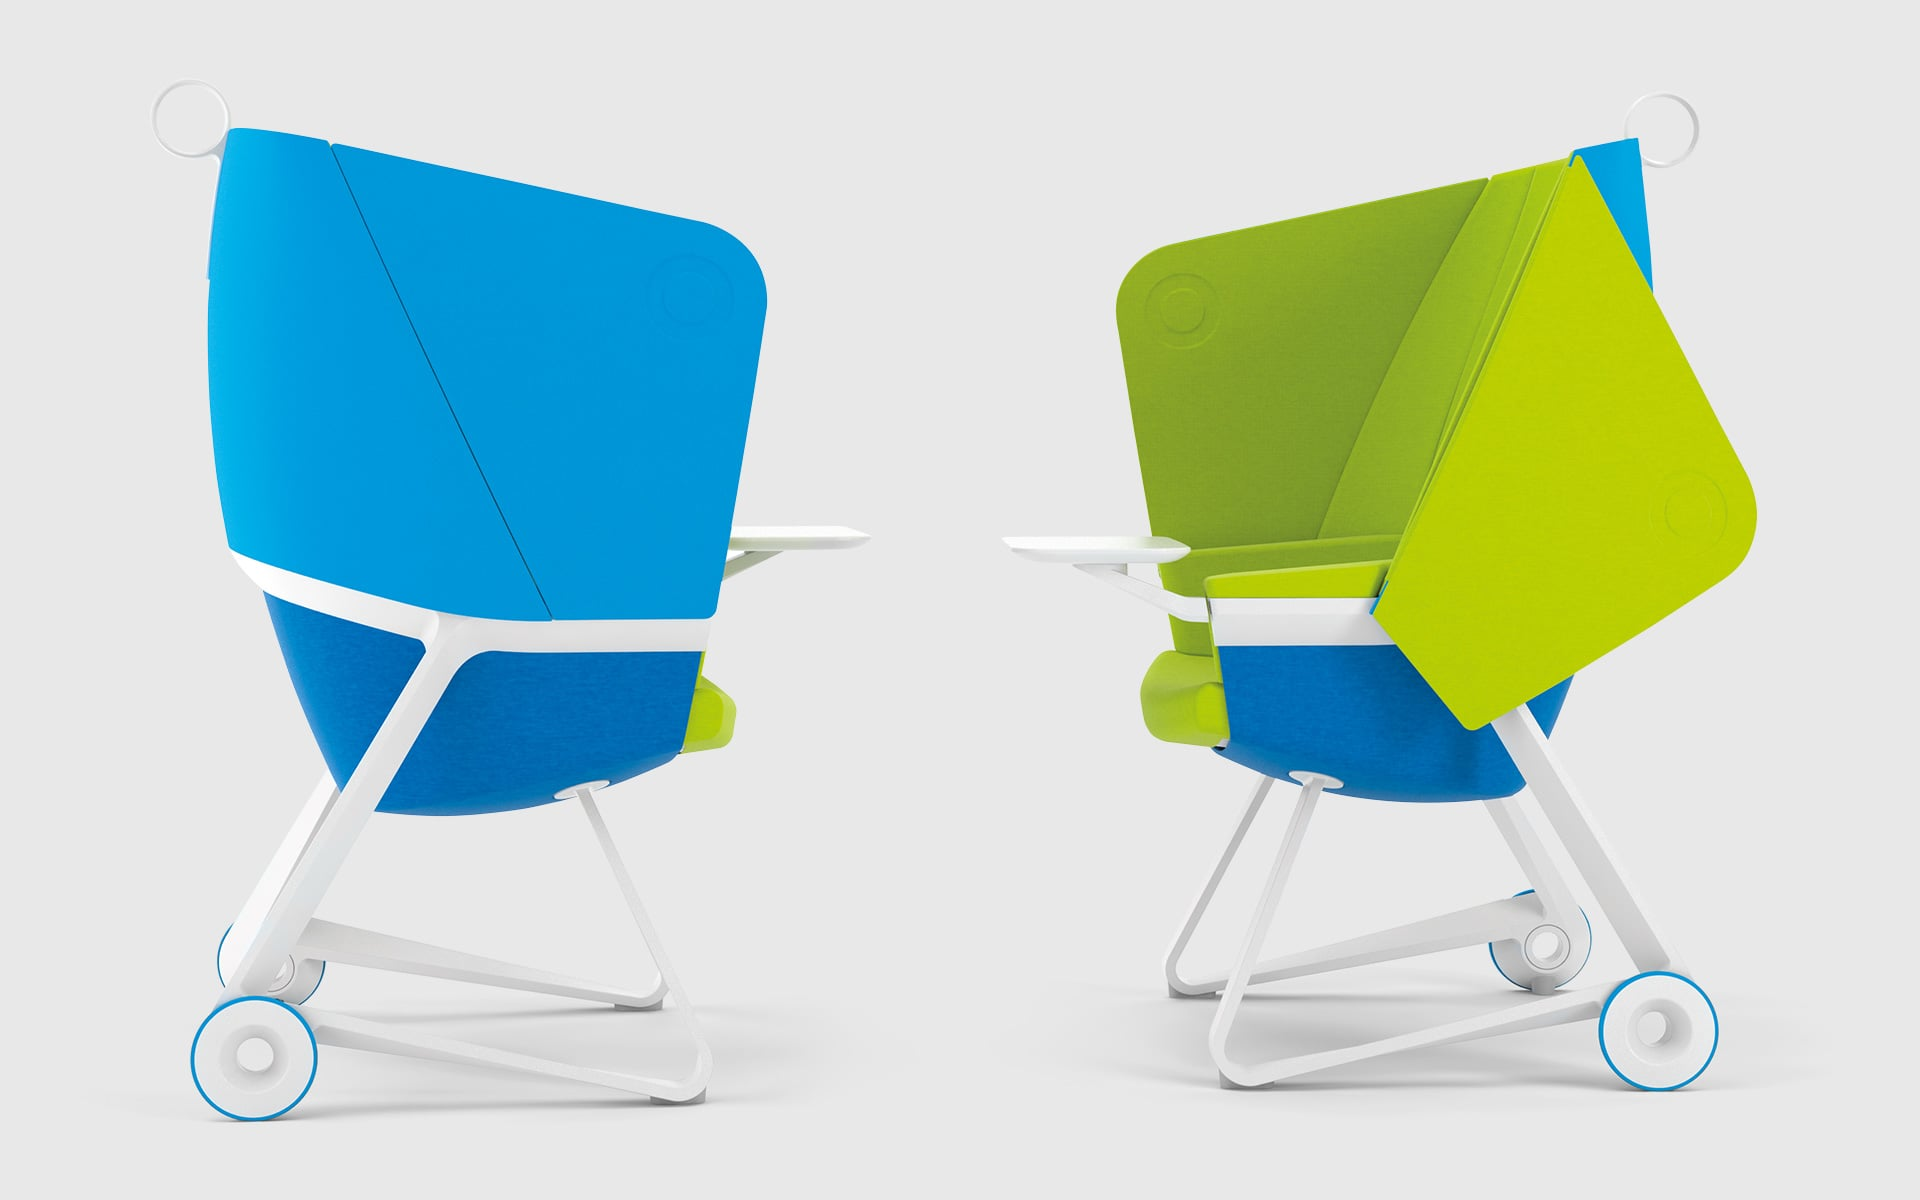 Two ergonomic ITO Design TeamUP office chairs in blue, green and white